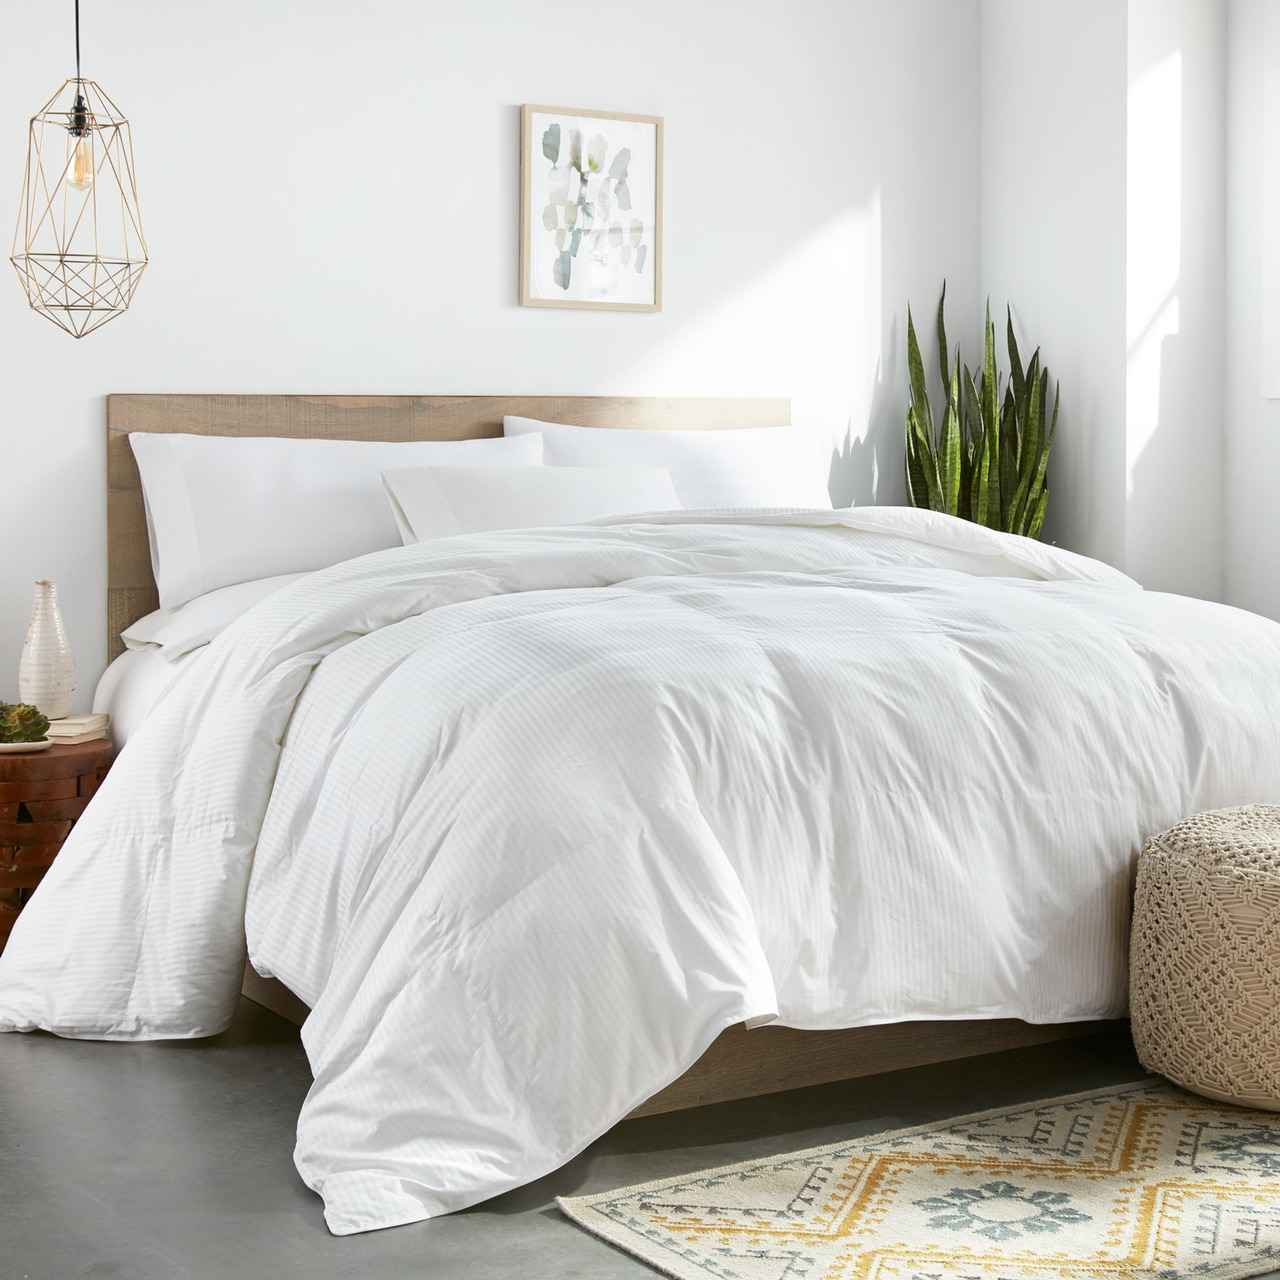 Colossal King Down Alternative Comforter Free Shipping